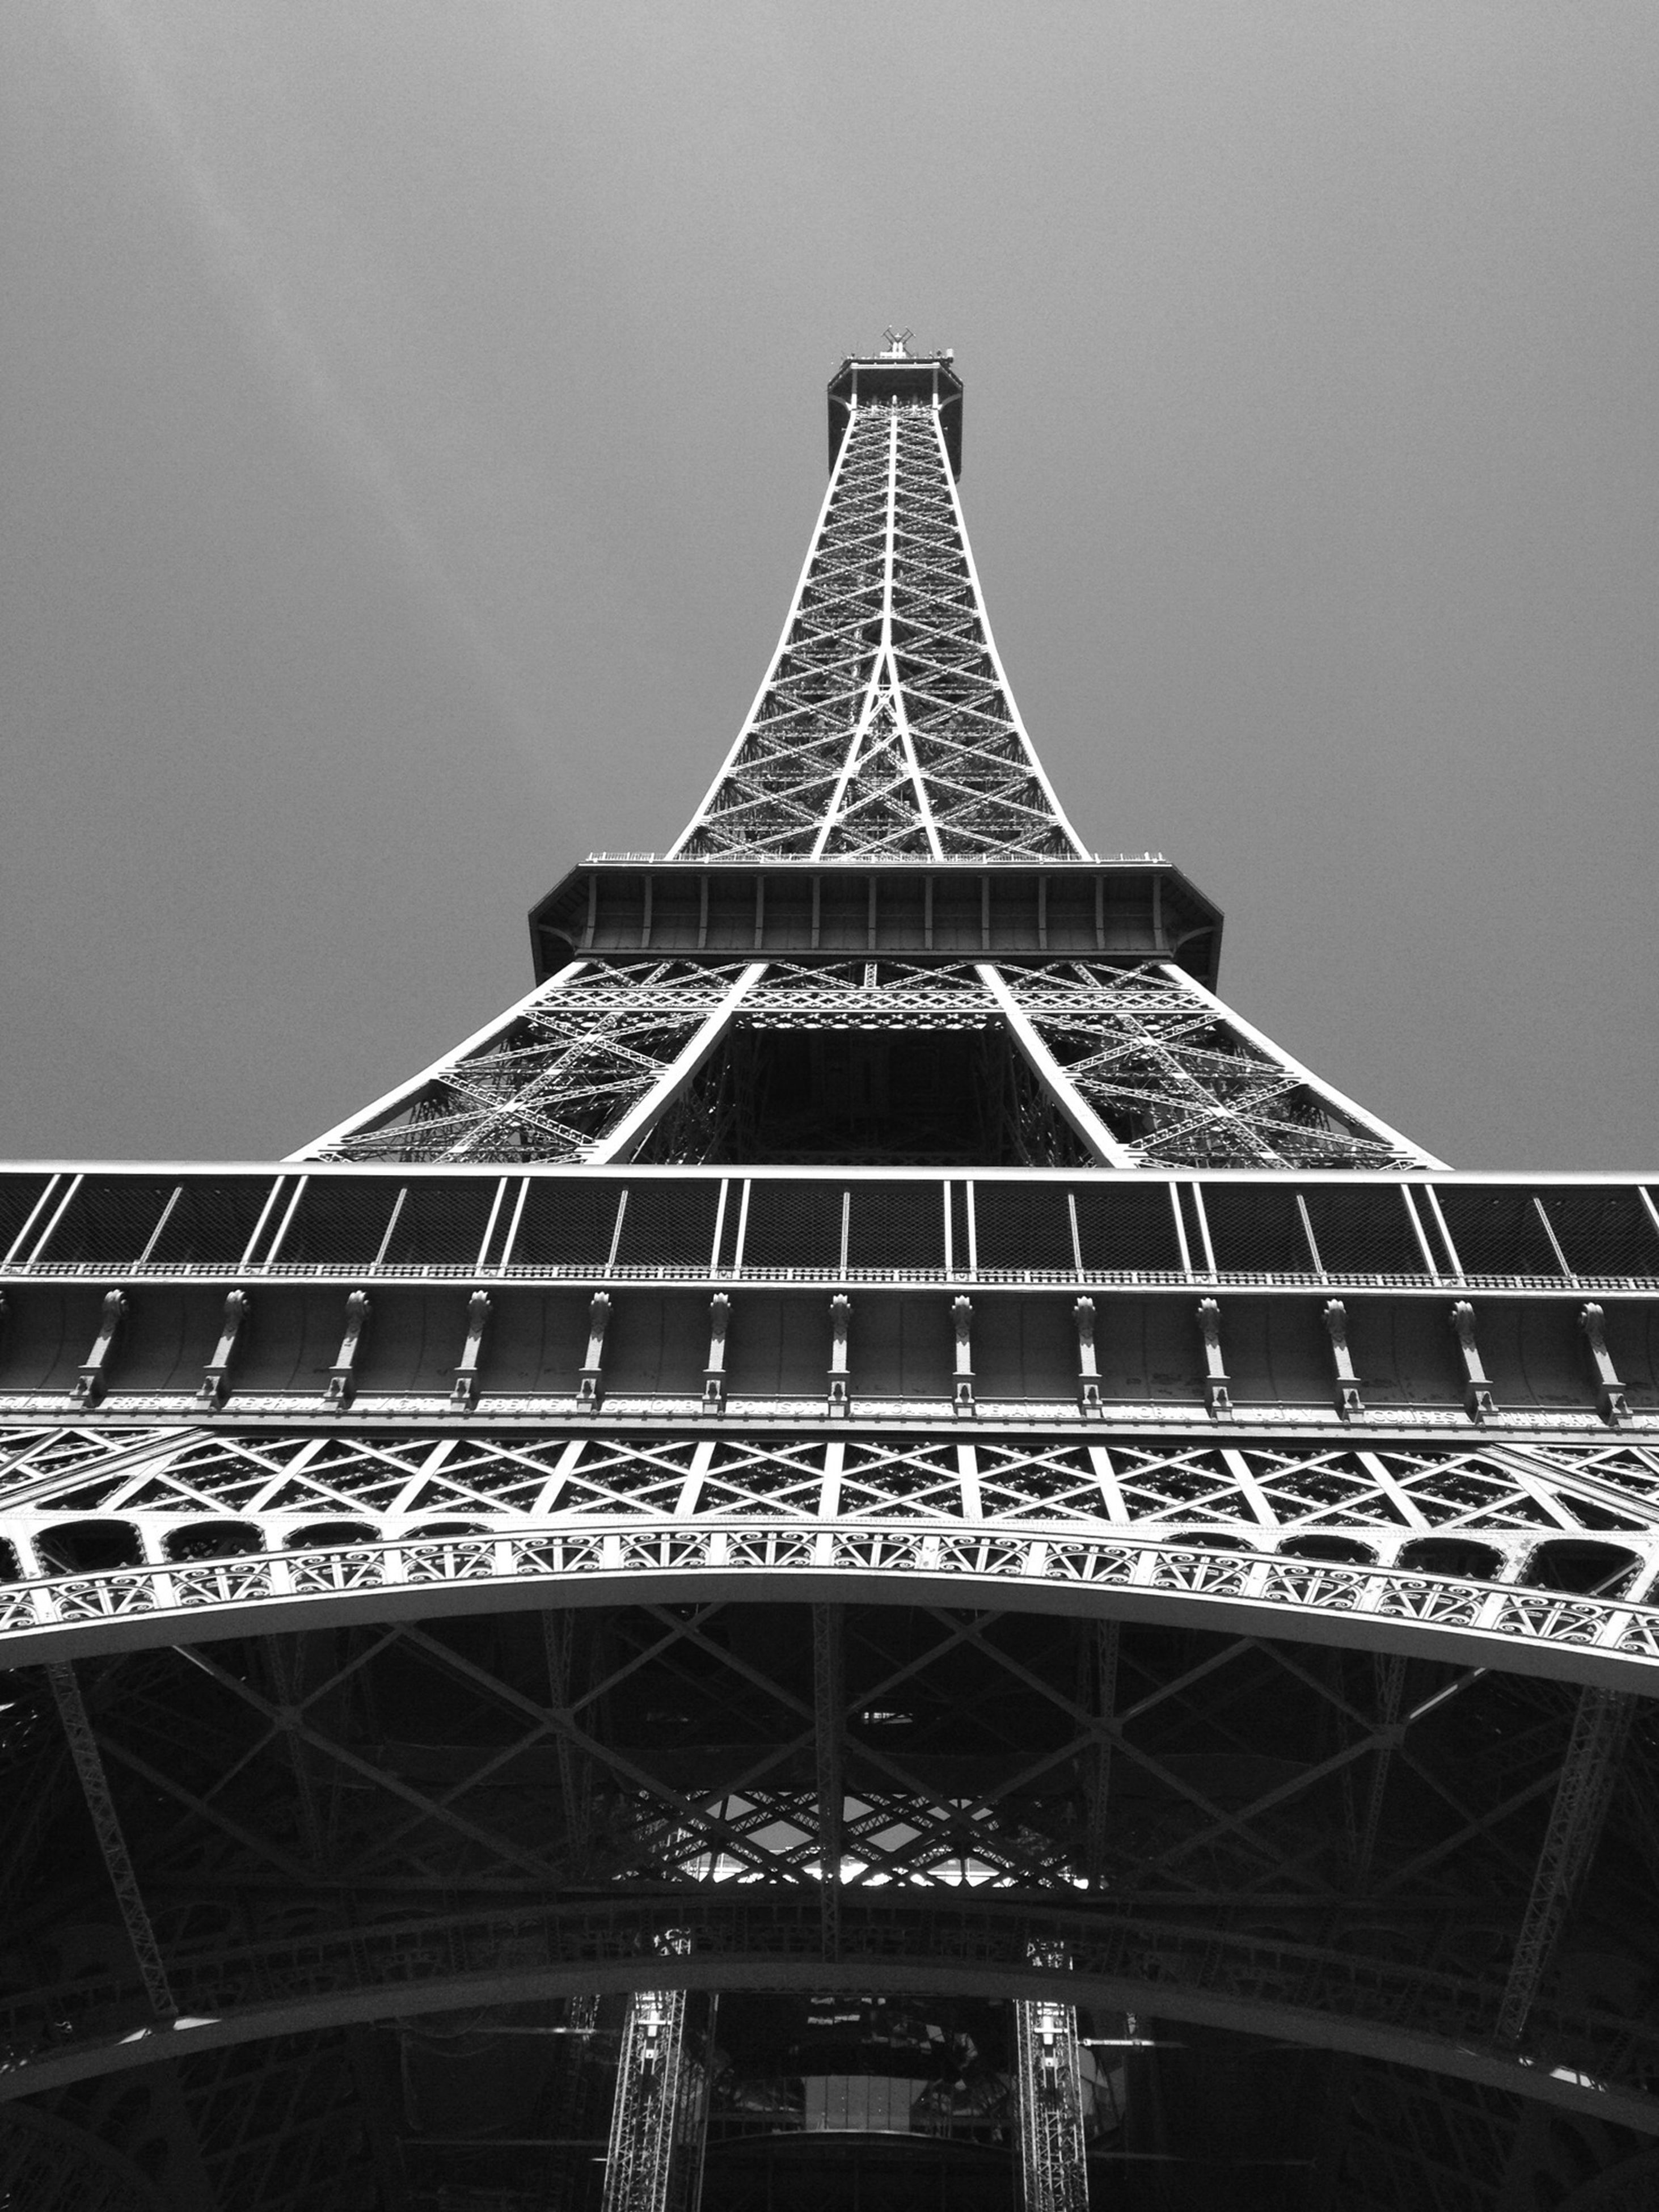 low angle view, international landmark, famous place, architecture, built structure, eiffel tower, travel destinations, tower, metal, capital cities, tall - high, tourism, travel, culture, clear sky, metallic, architectural feature, sky, communication, city